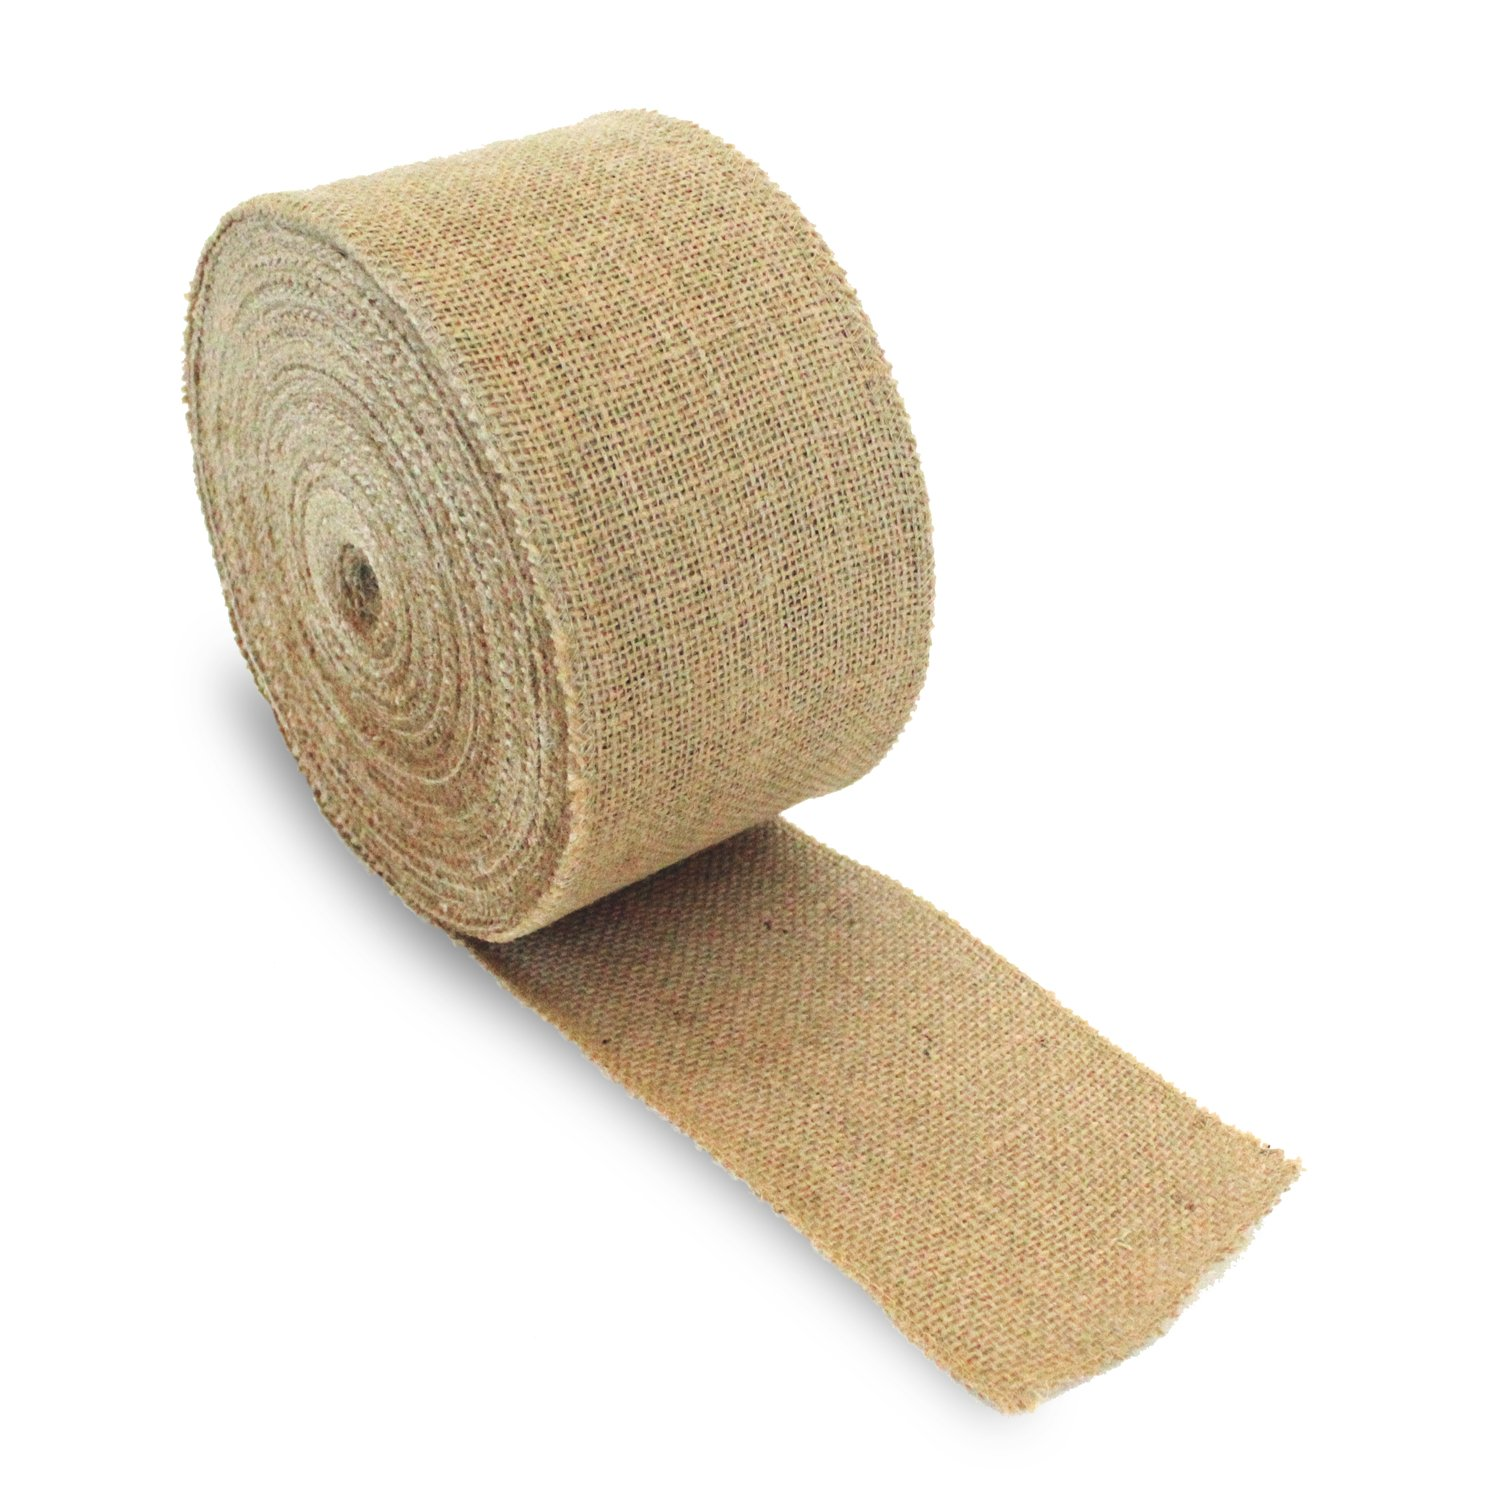 Craft Burlap Ribbon No Fray Edges 4 Inches by 50 Yards Wreath Ribbon Burlap and Beyond 4336858362